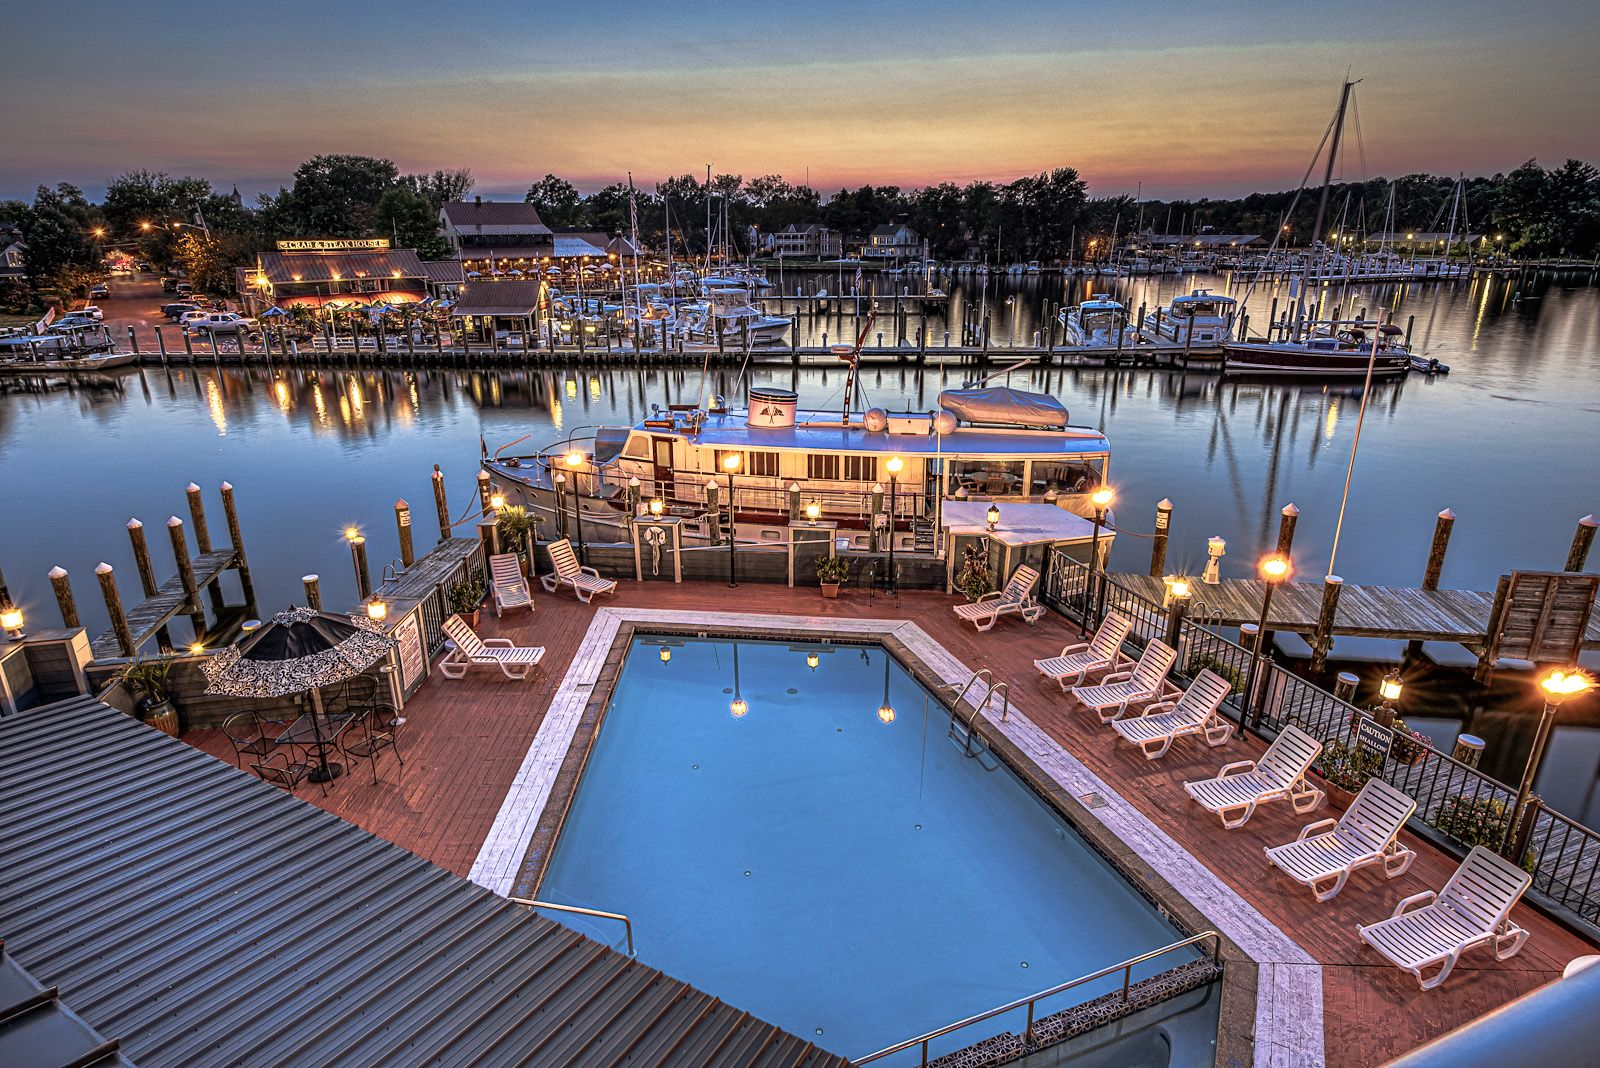 St Michaels Md Hotels Harbour Inn Marina Spa Always Wanted To Go Looks Like A Nice Place